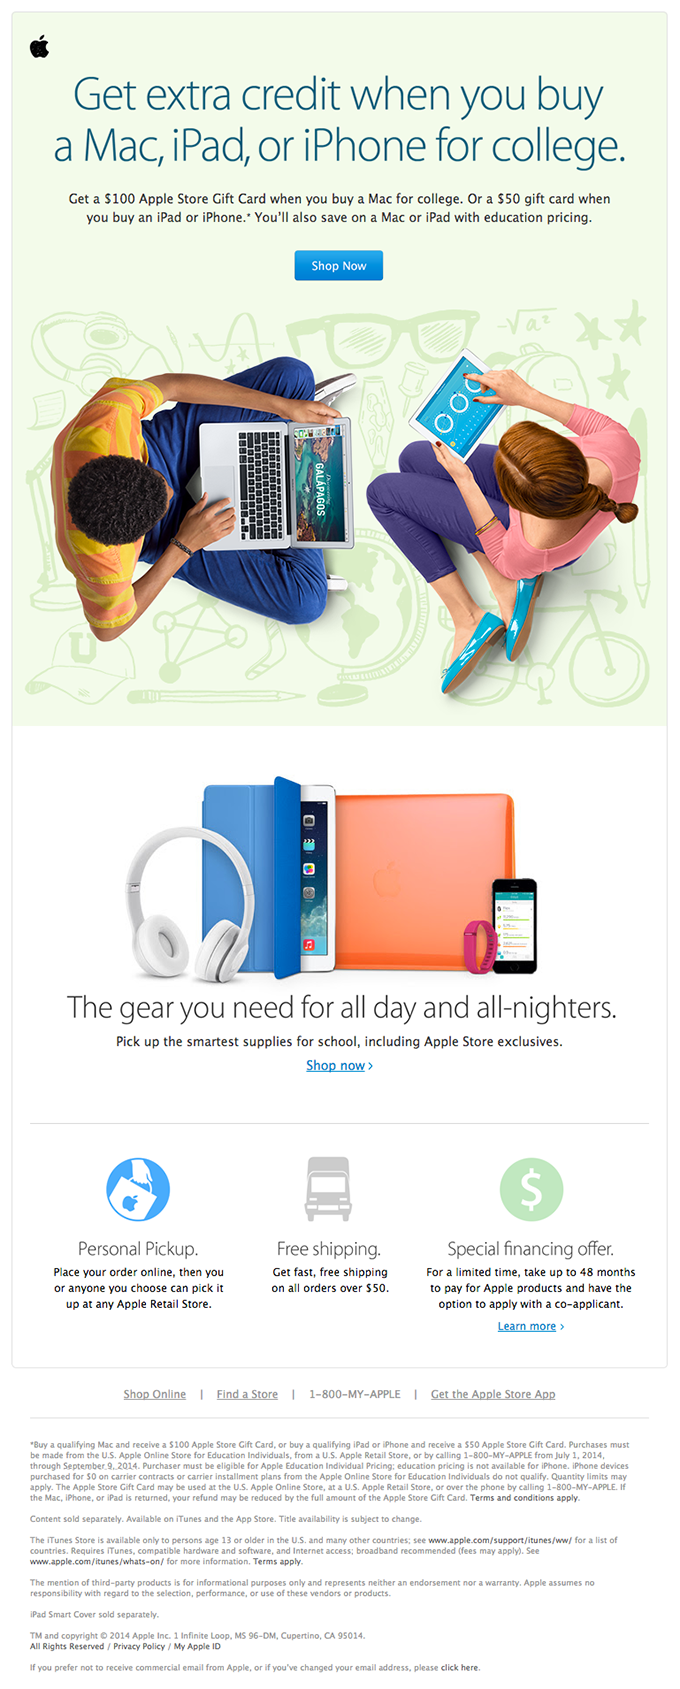 Promotional Student Email Design from Apple